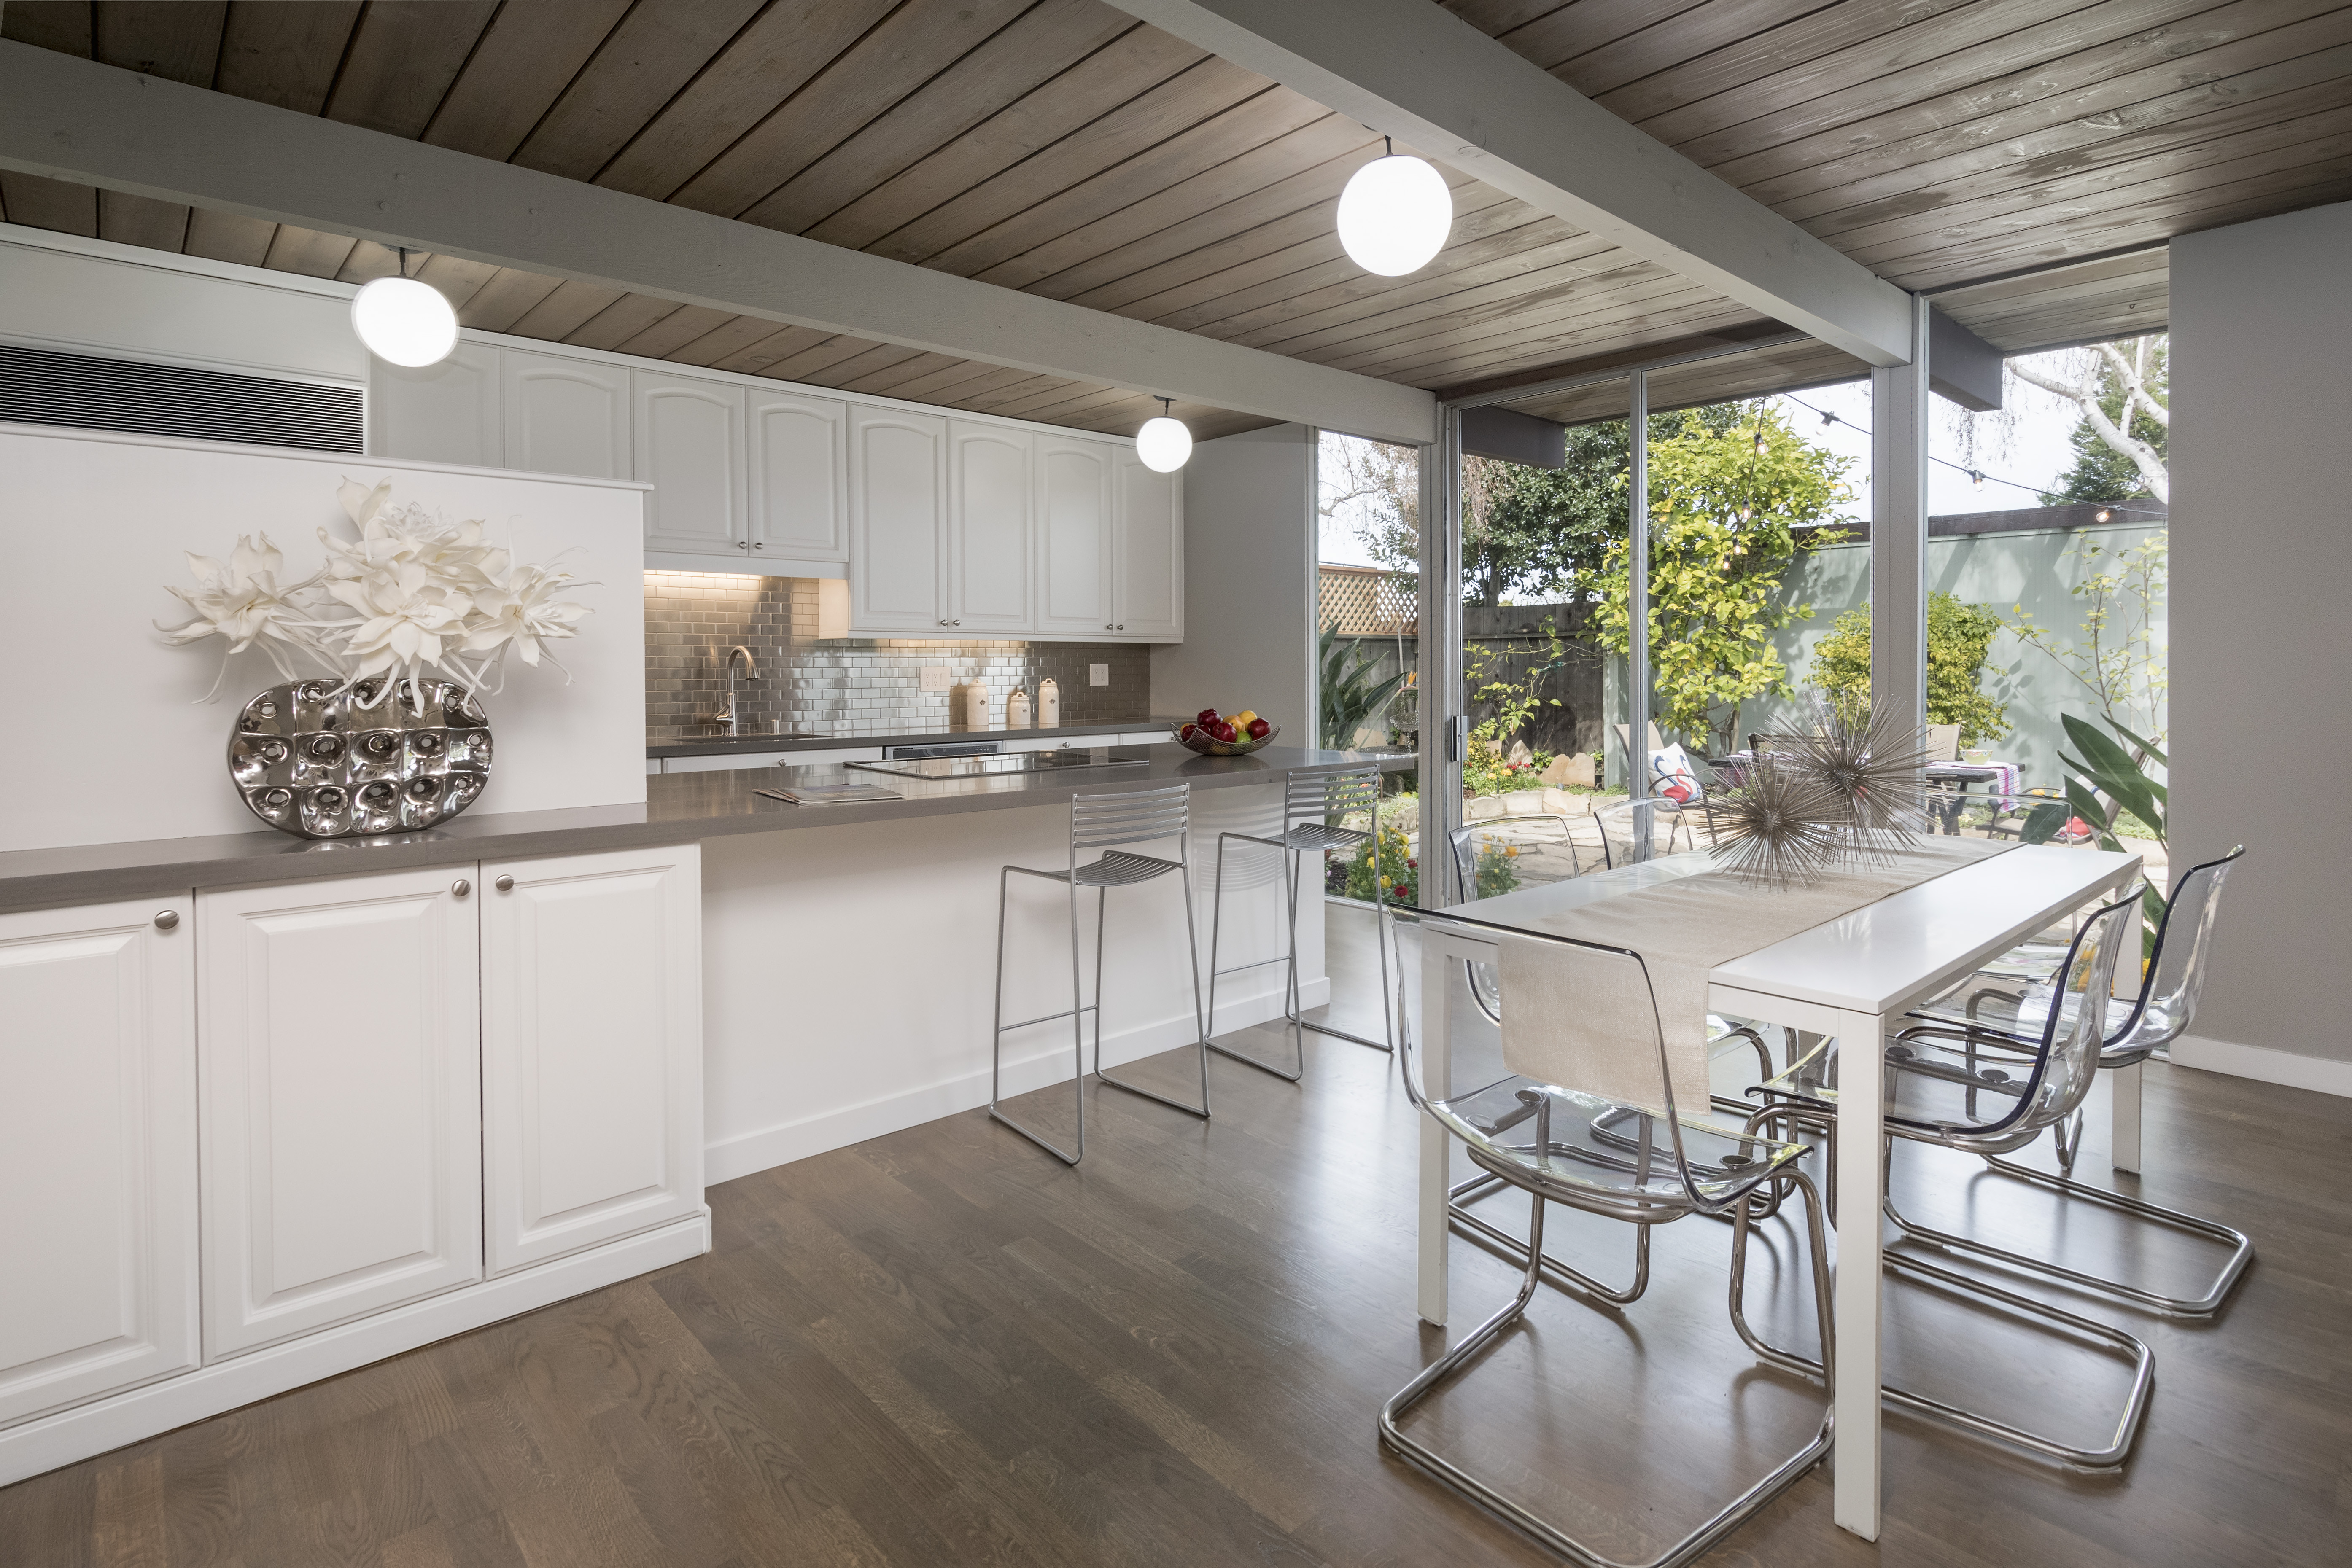 Imaginecozy Staging A Kitchen: Decor Home Staging: Home Staging San Mateo San Francisco